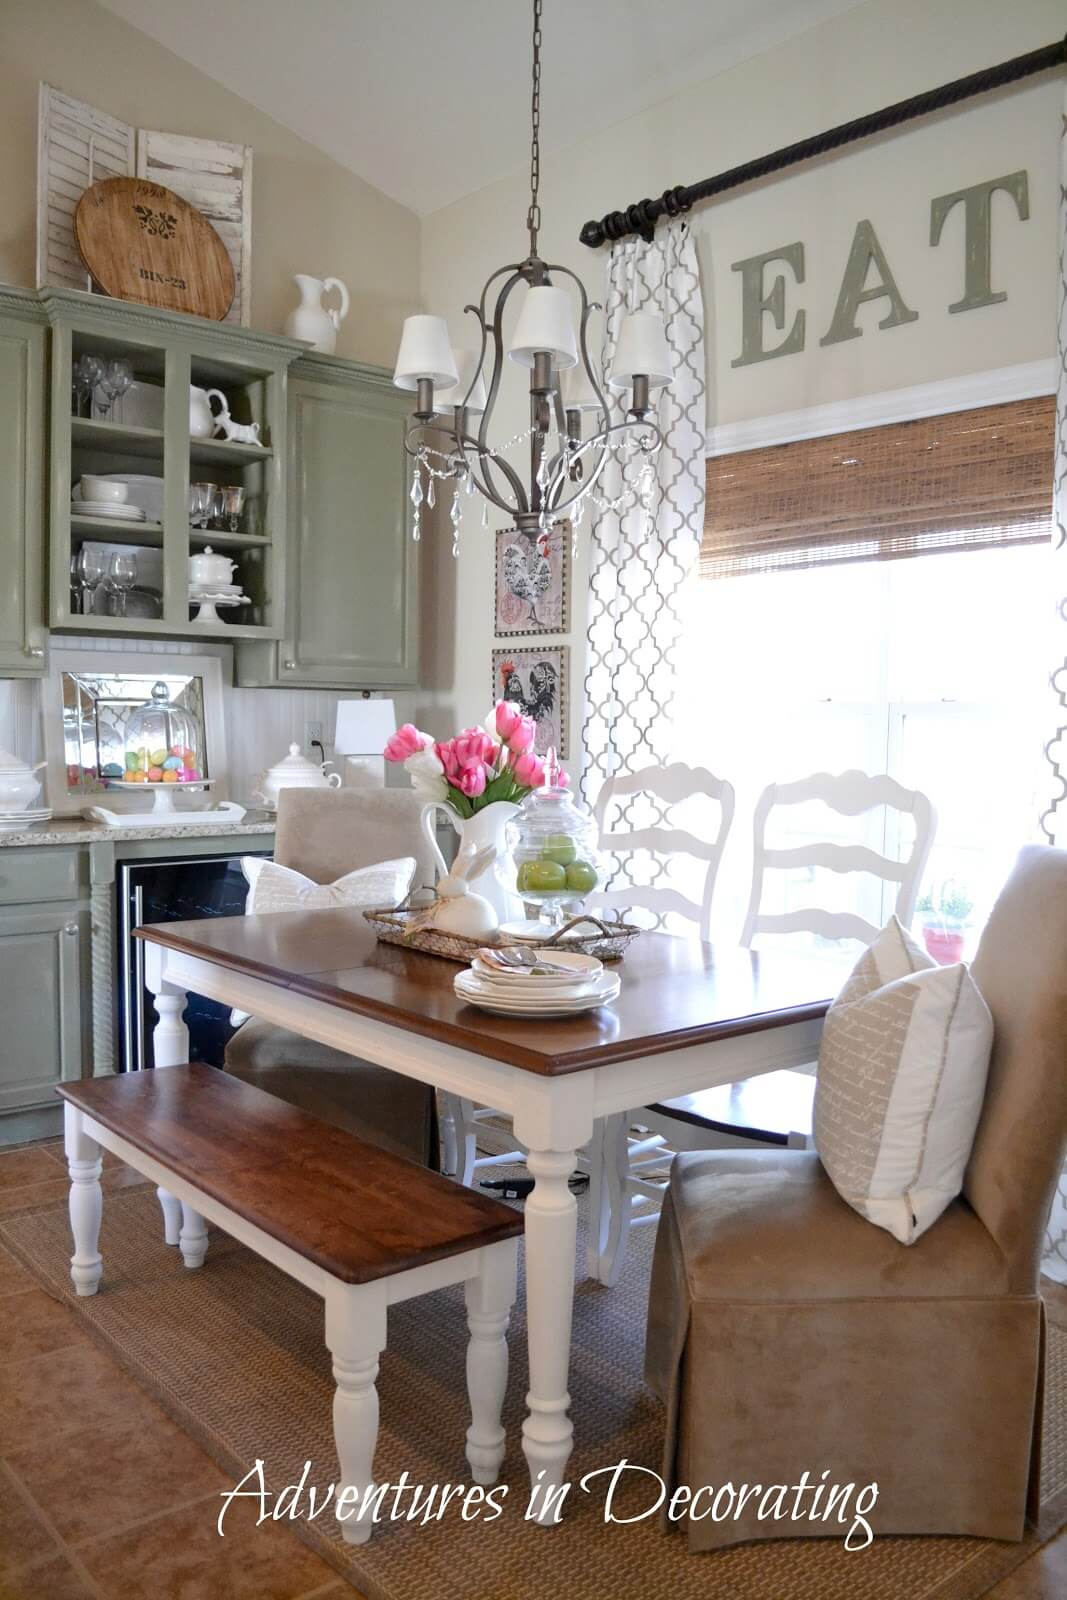 17 charming farmhouse dining room design and decor ideas style motivation - Charming small kitchen table ideas eat kitchen plan ...